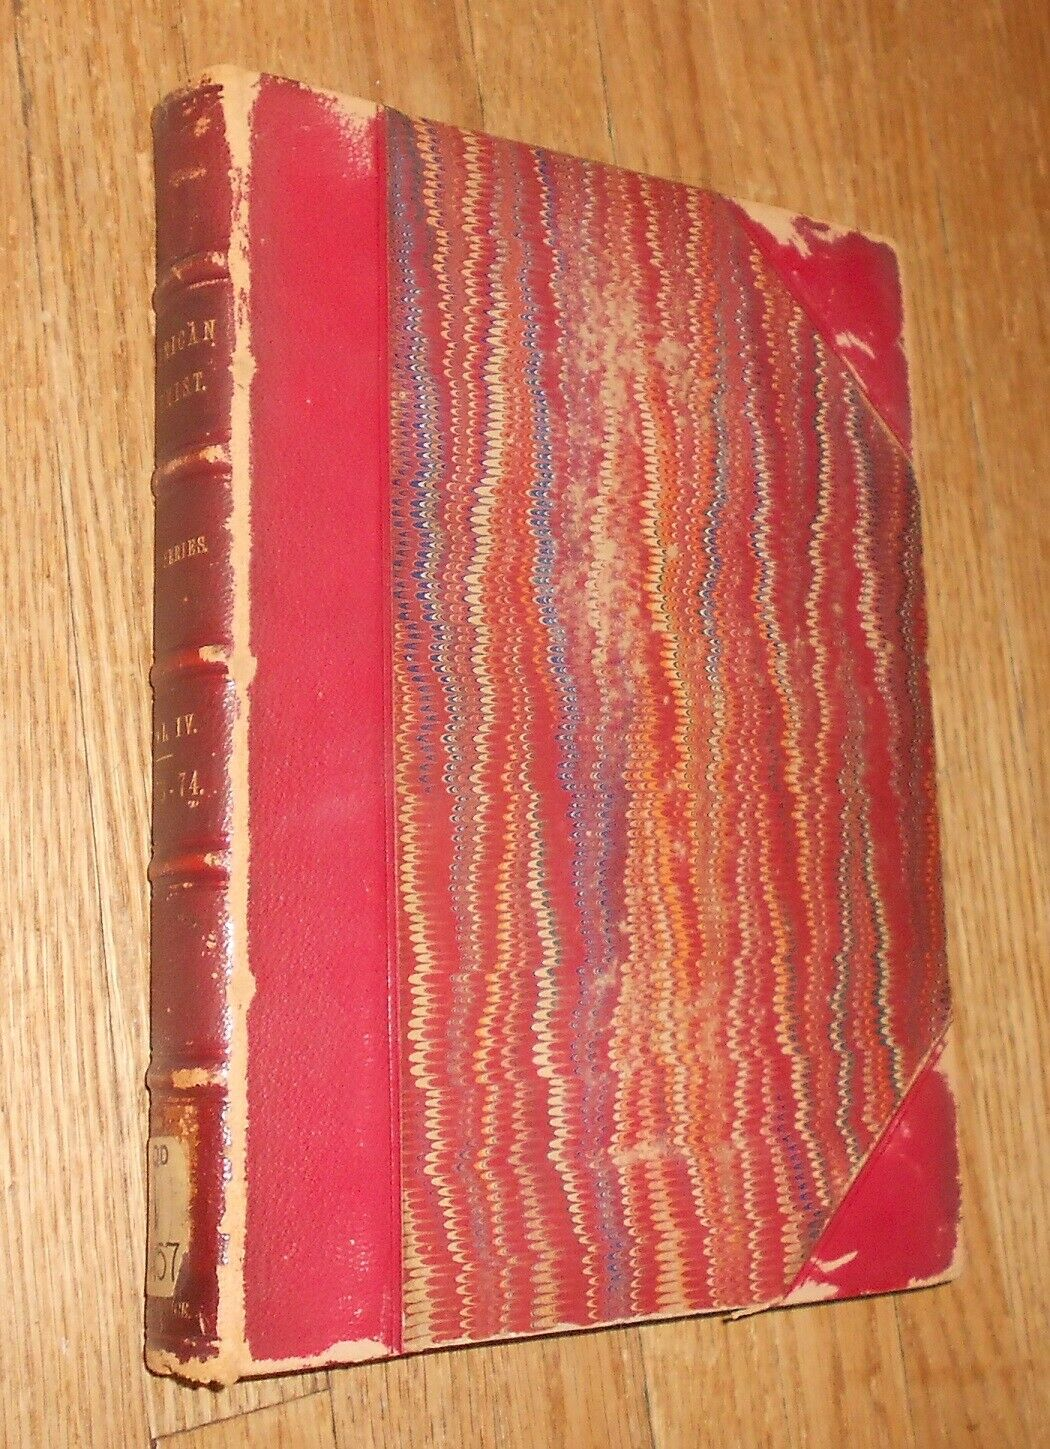 1874 Antique Book The American Chemist bound volume 12 issues ed. W